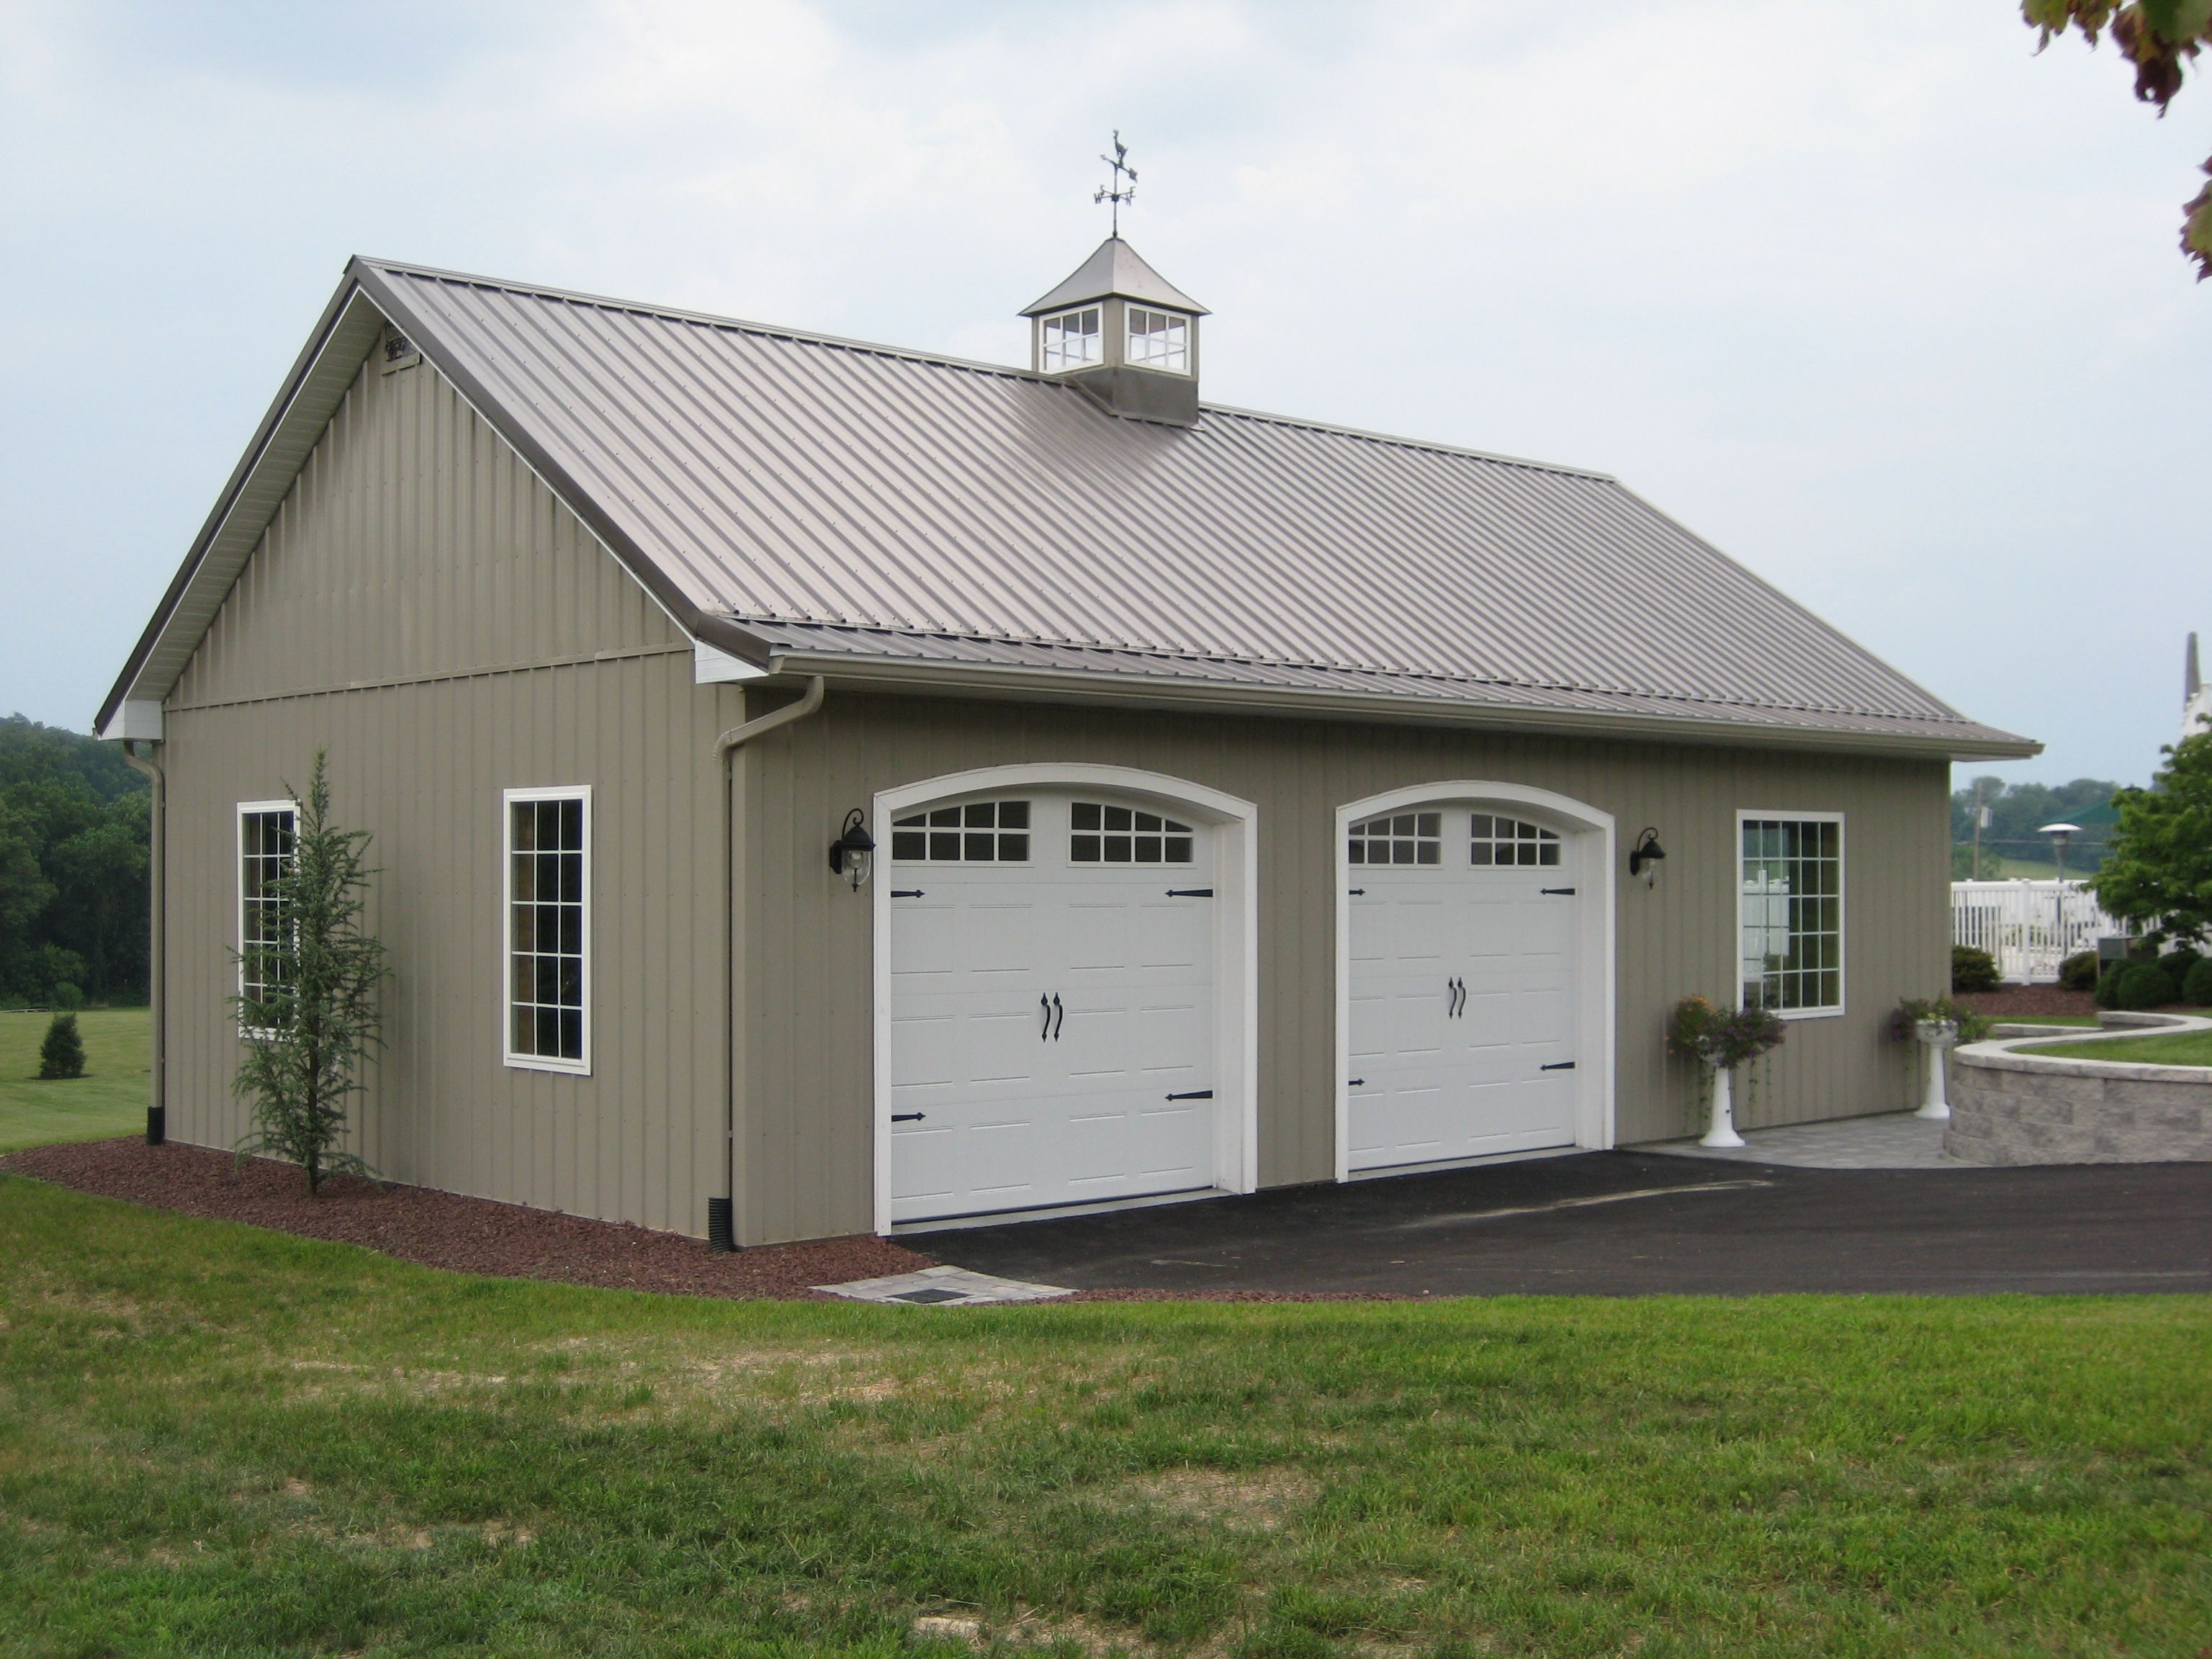 Pole Barn Designs Most Cost Effective Way To Build Permanent Design Post  Frame Buildings Online With This Free Planning Tool And Determine The  Building Size